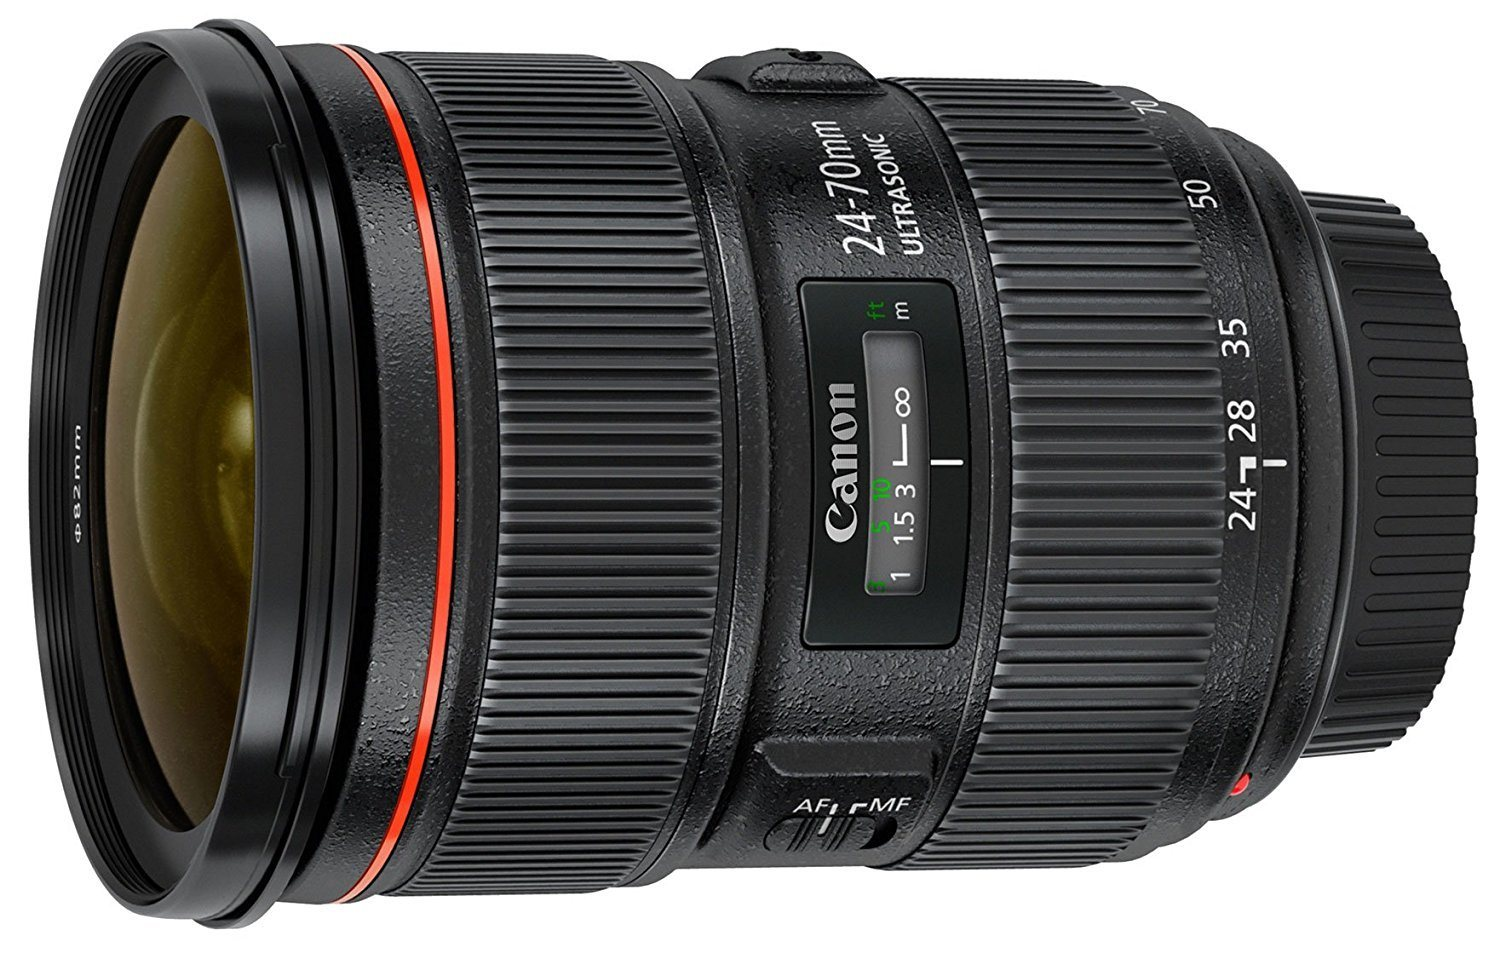 canon 24-70mm f/2.8 travel lens